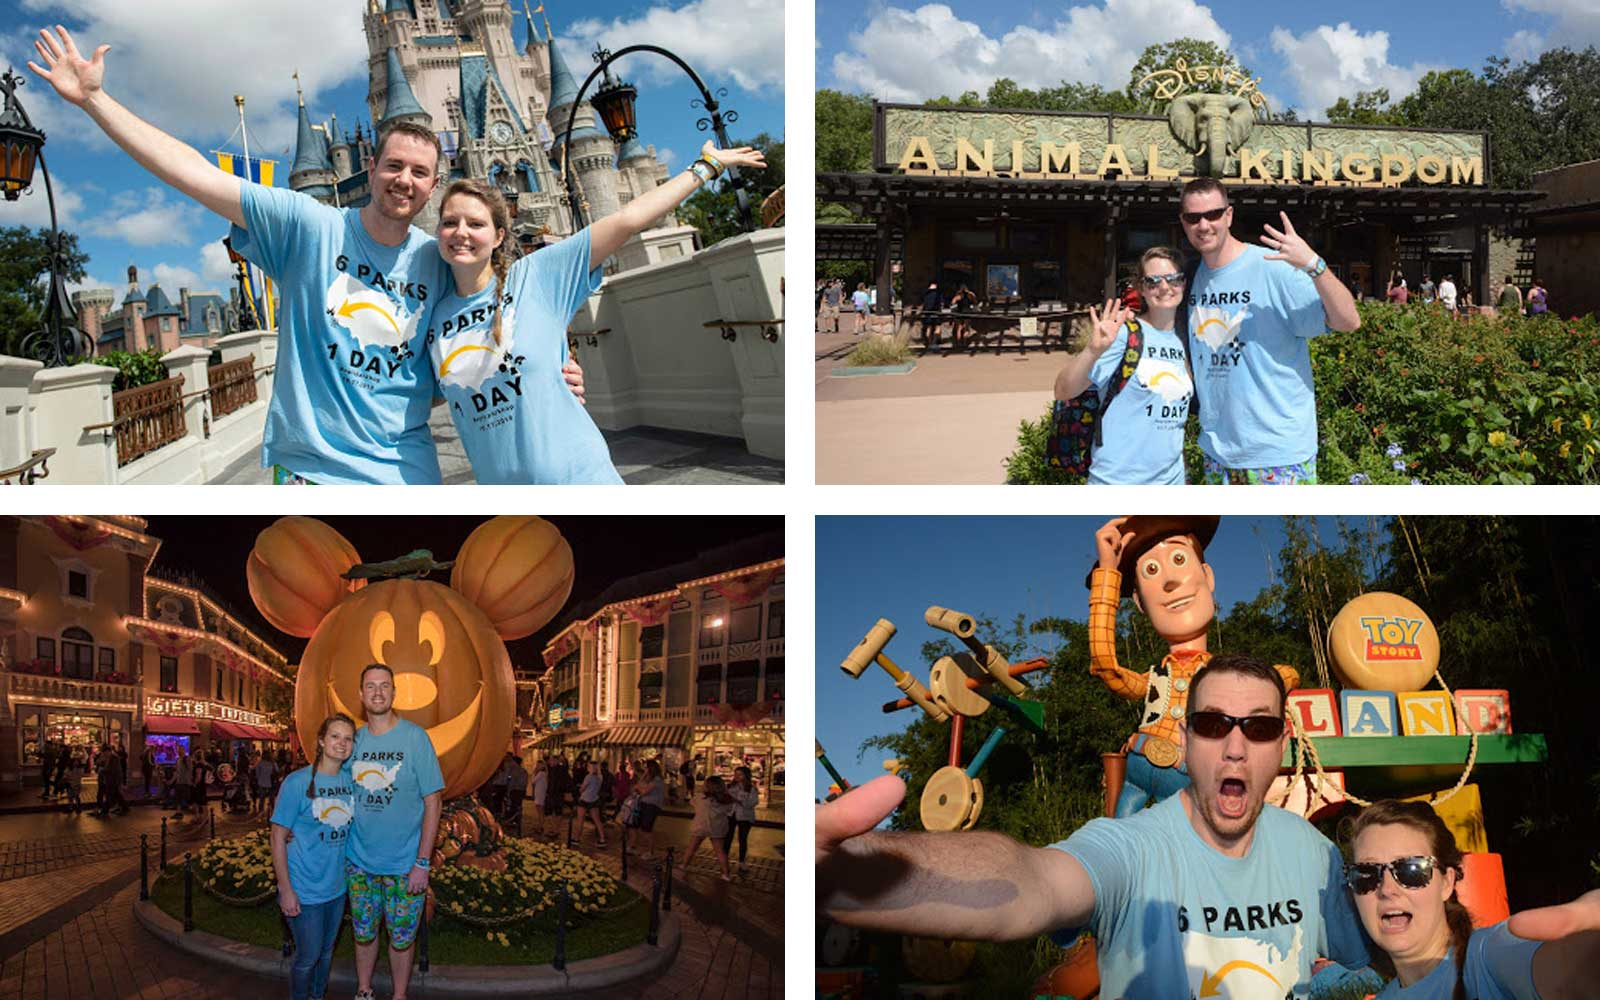 This Couple Celebrated Their Anniversary by Visiting Disney World and Disneyland in One Day